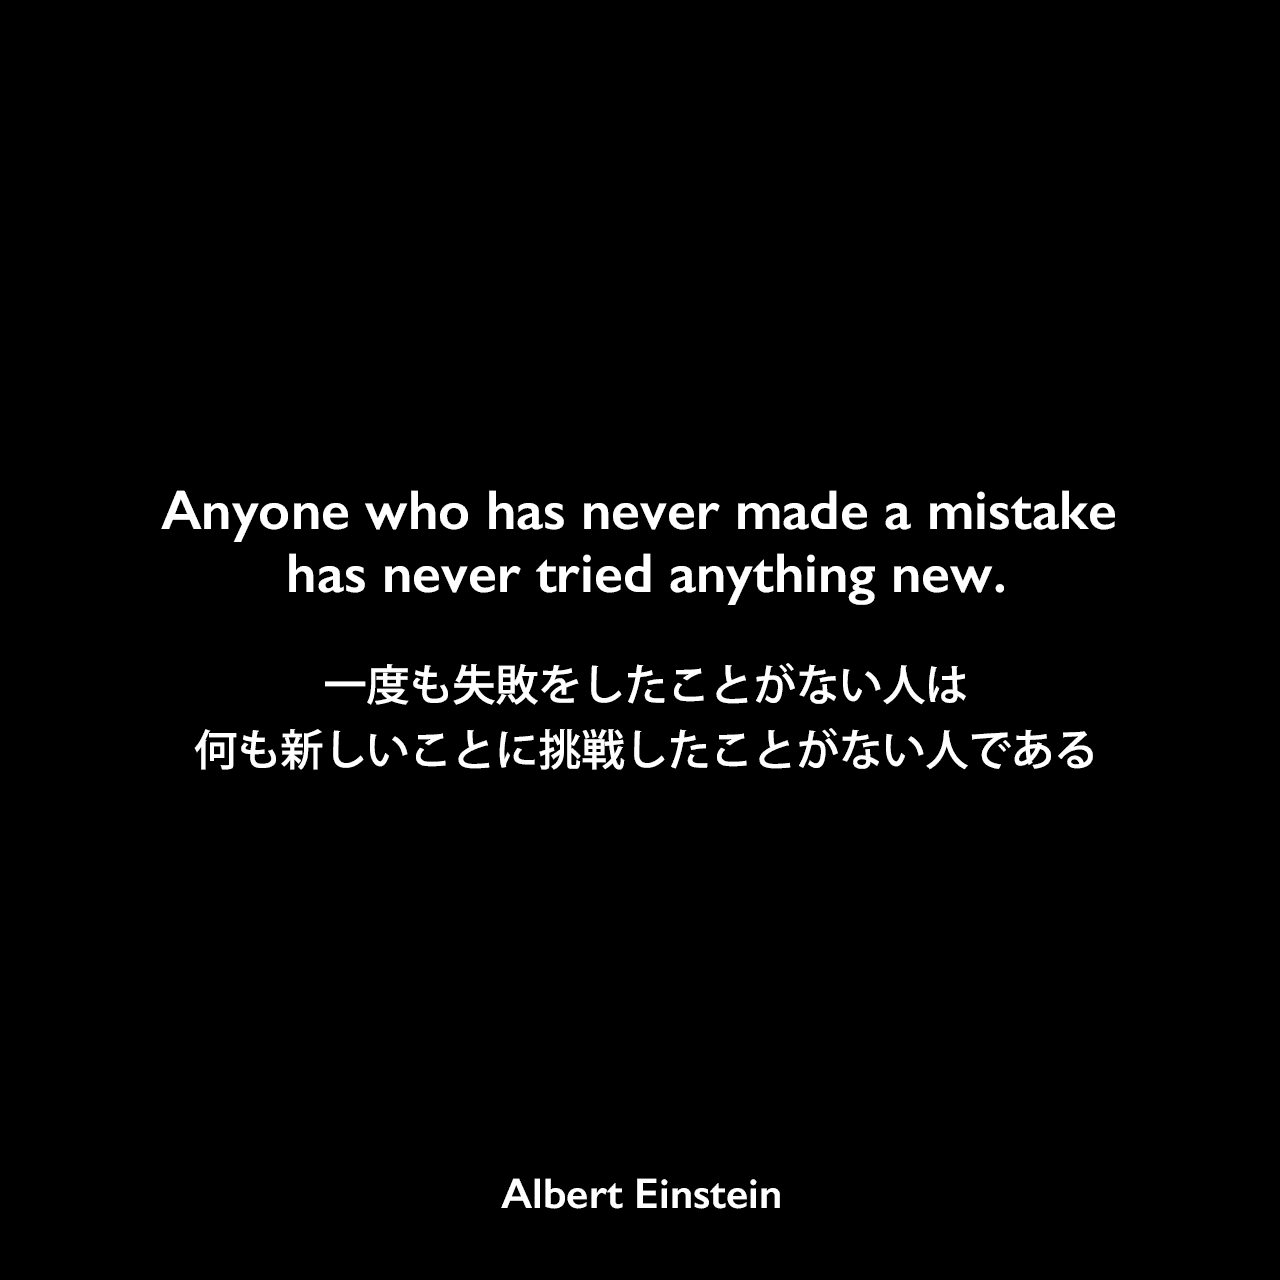 Anyone who has never made a mistake has never tried anything new.一度も失敗をしたことがない人は、何も新しいことに挑戦したことがない人である